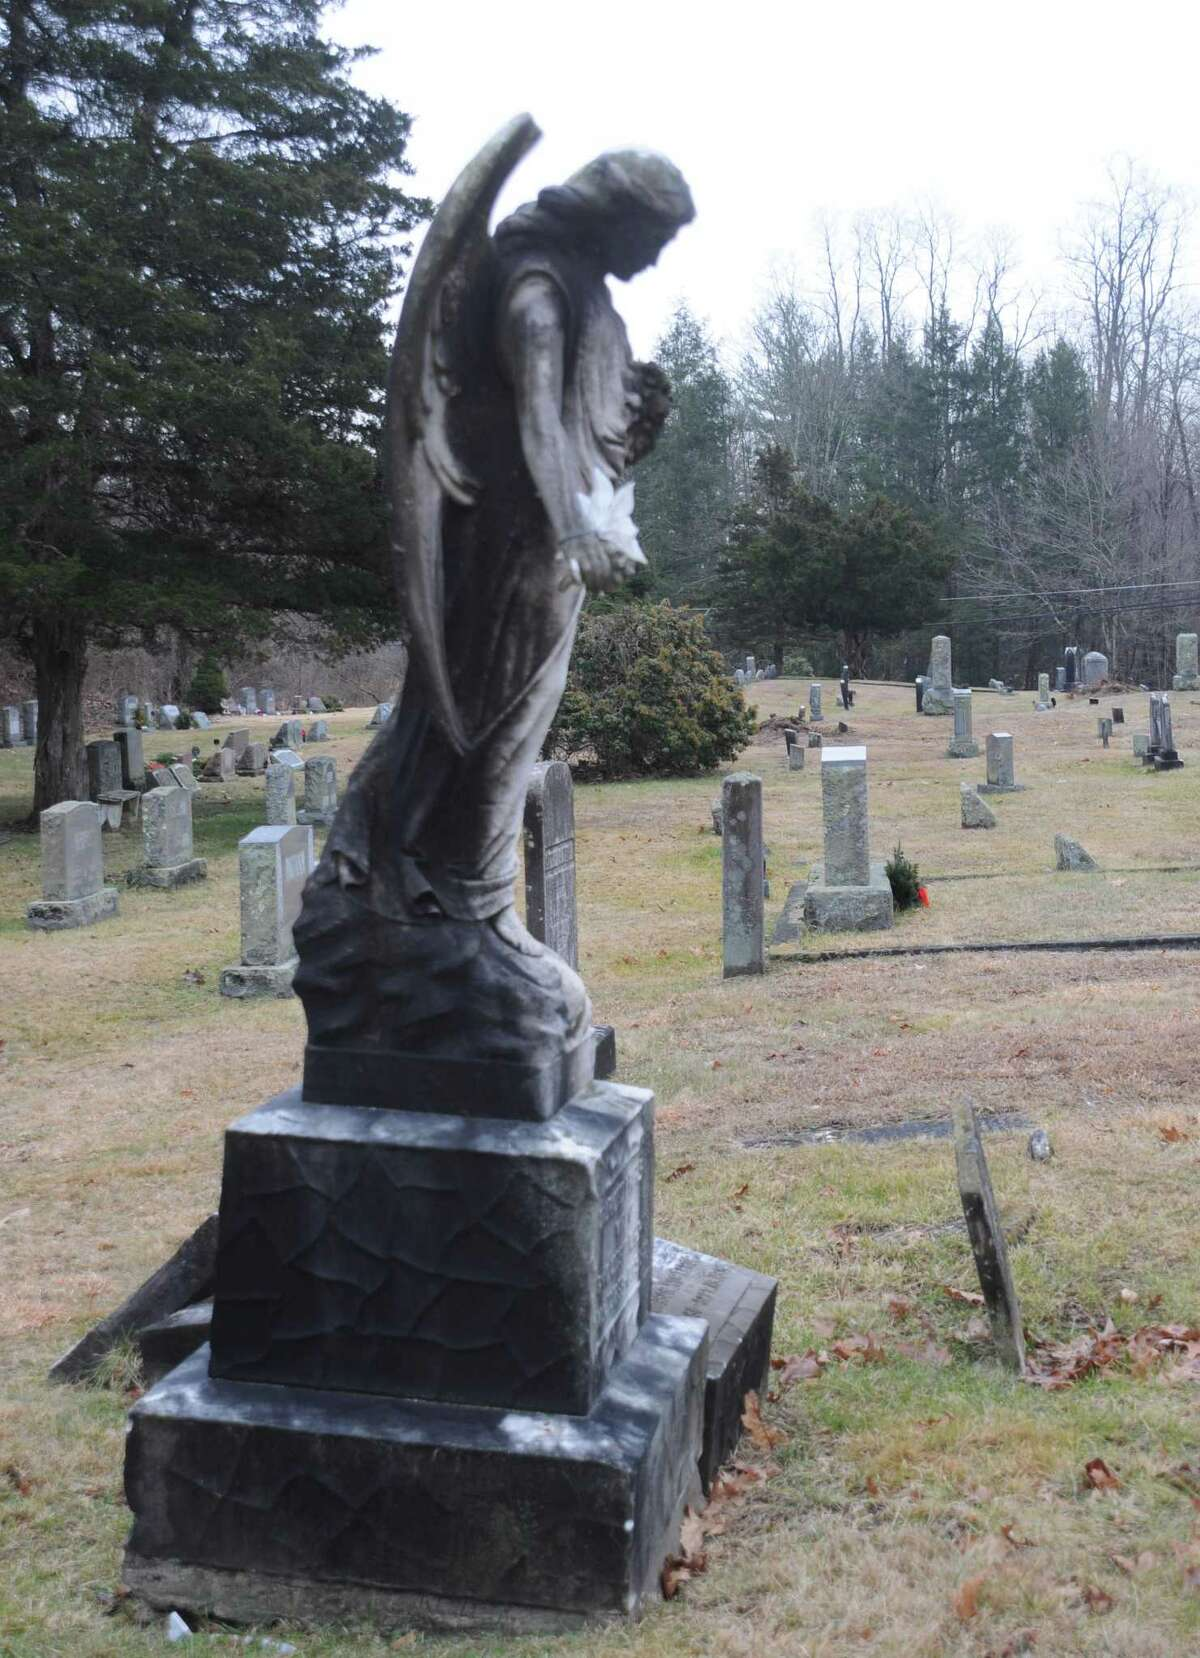 Old stones and statues mark the graves at Branchville Cemetery. The town is working to gain title to the graveyard, which dates to the mid 1800s.